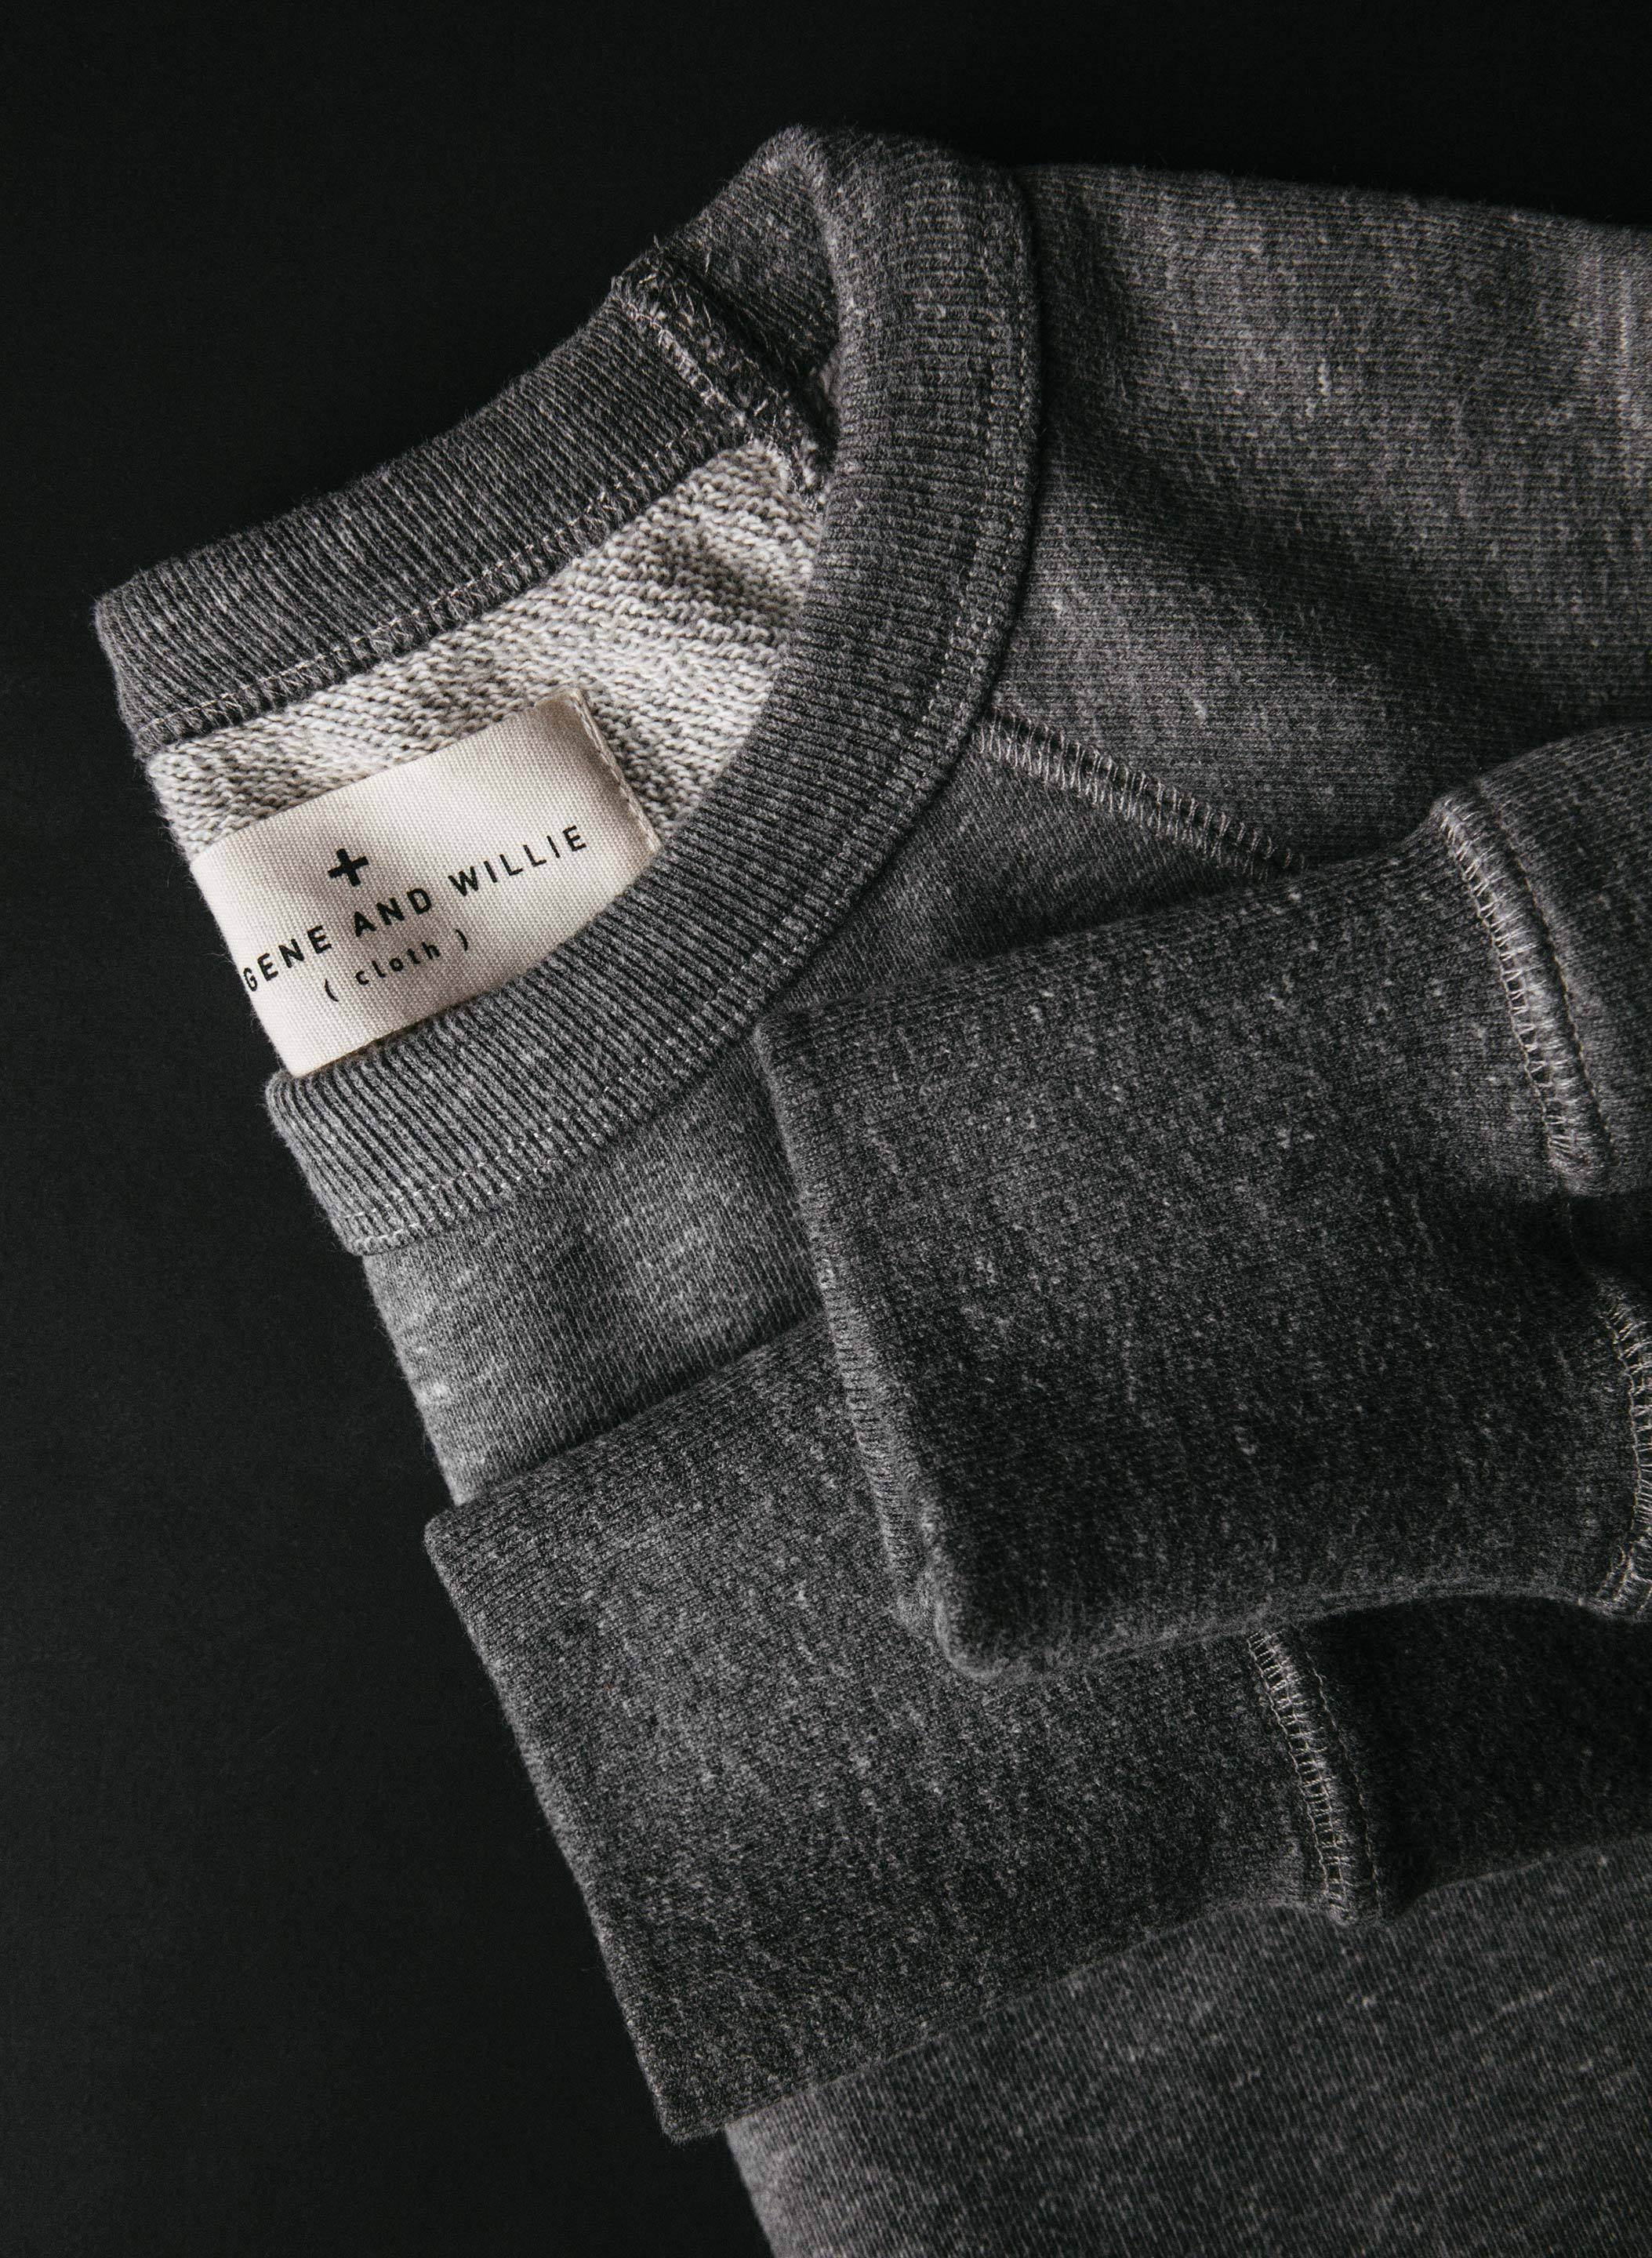 imogene + willie - the dryden sweatshirt in heather grey